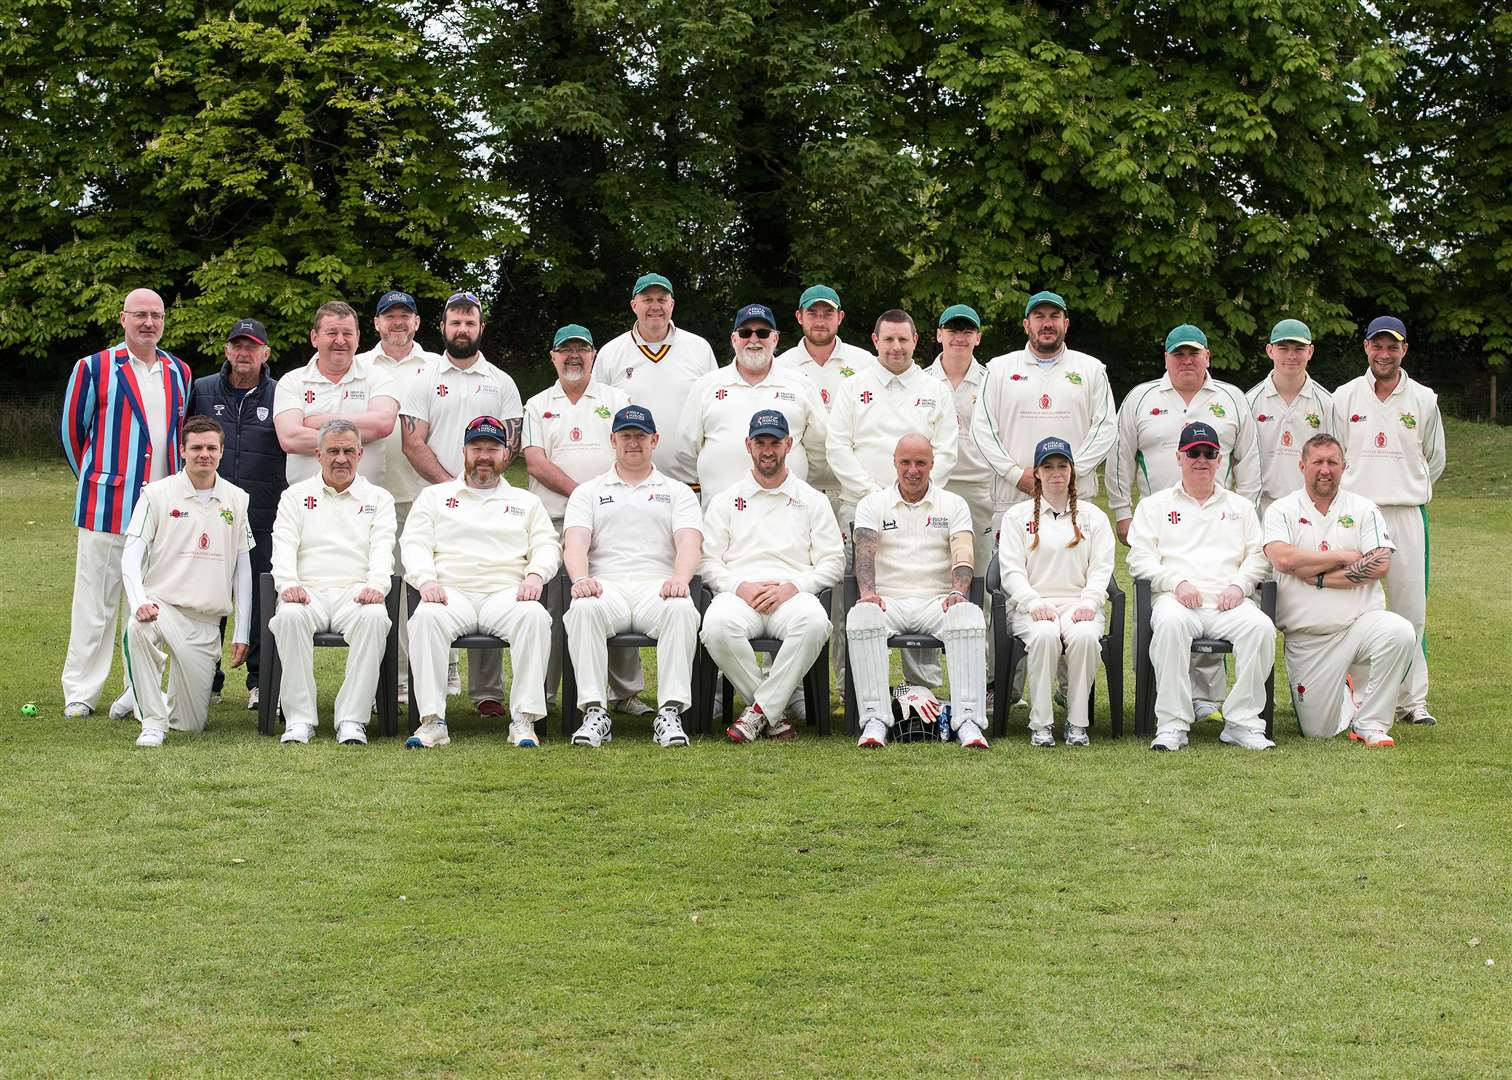 Long Melford Cricket Club is hosting the Help for Heroes cricket teams, which are comprised of former military personnel, for two exhibition games, in order to raise money for the charity. Picture by Mark Westley. (9755297)